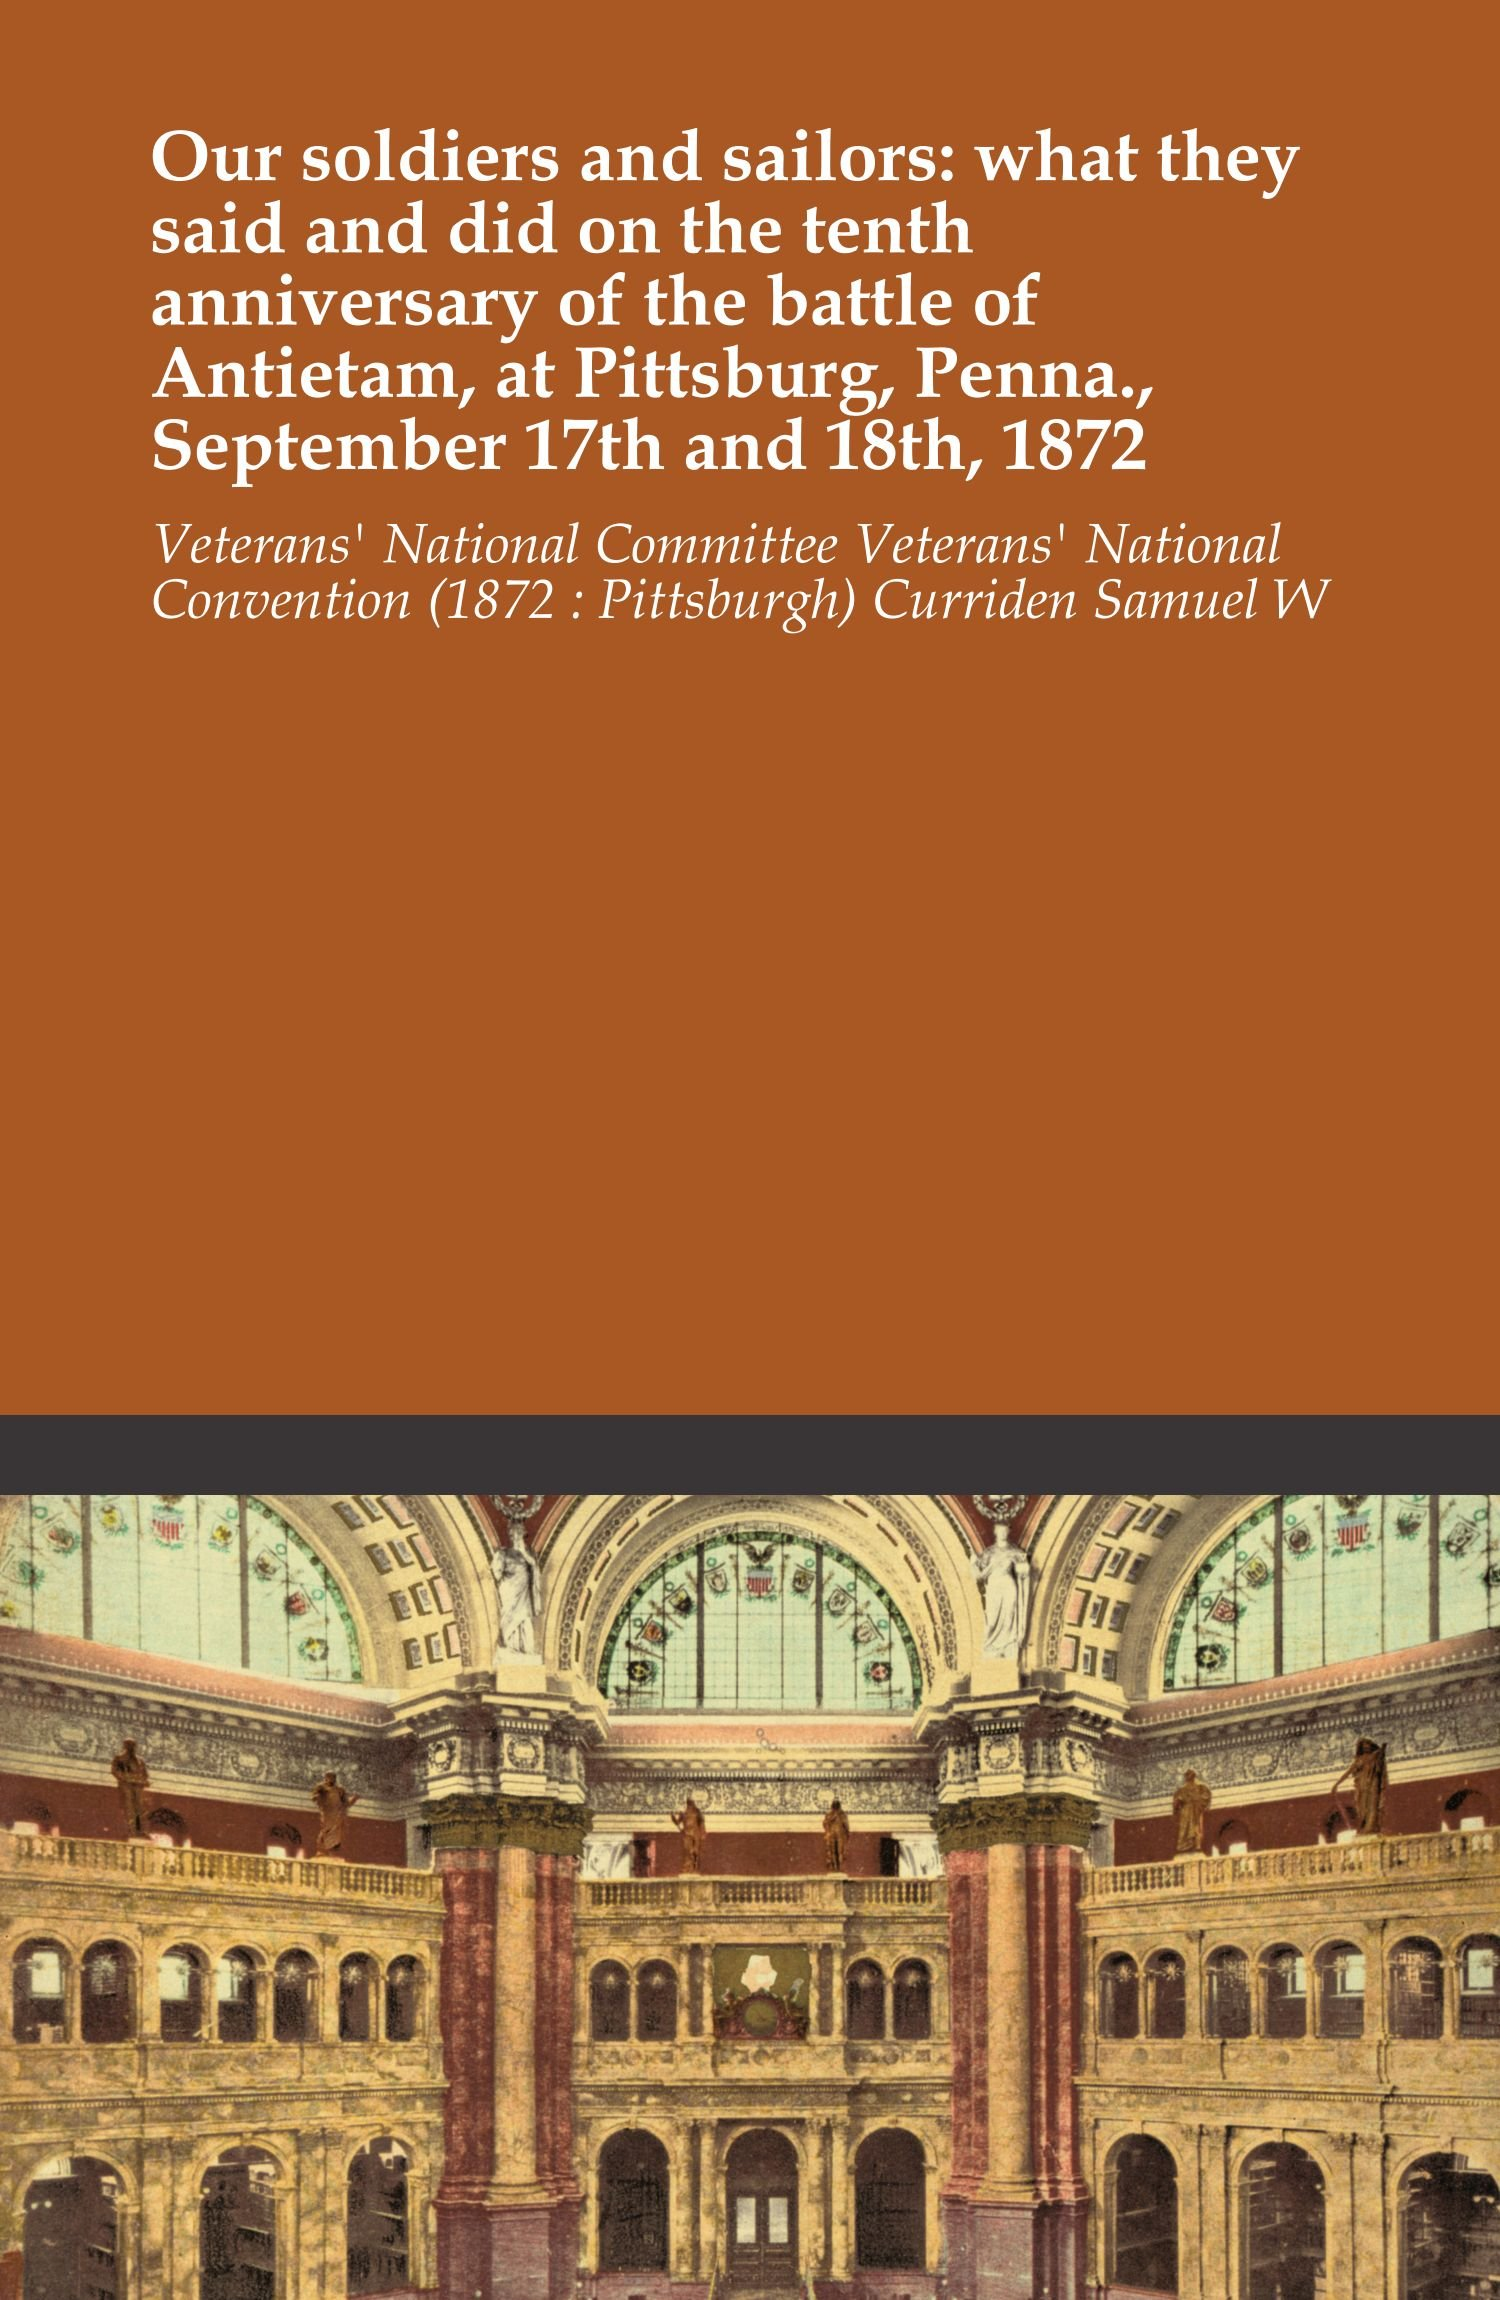 Download Our soldiers and sailors: what they said and did on the tenth anniversary of the battle of Antietam, at Pittsburg, Penna., September 17th and 18th, 1872 pdf epub